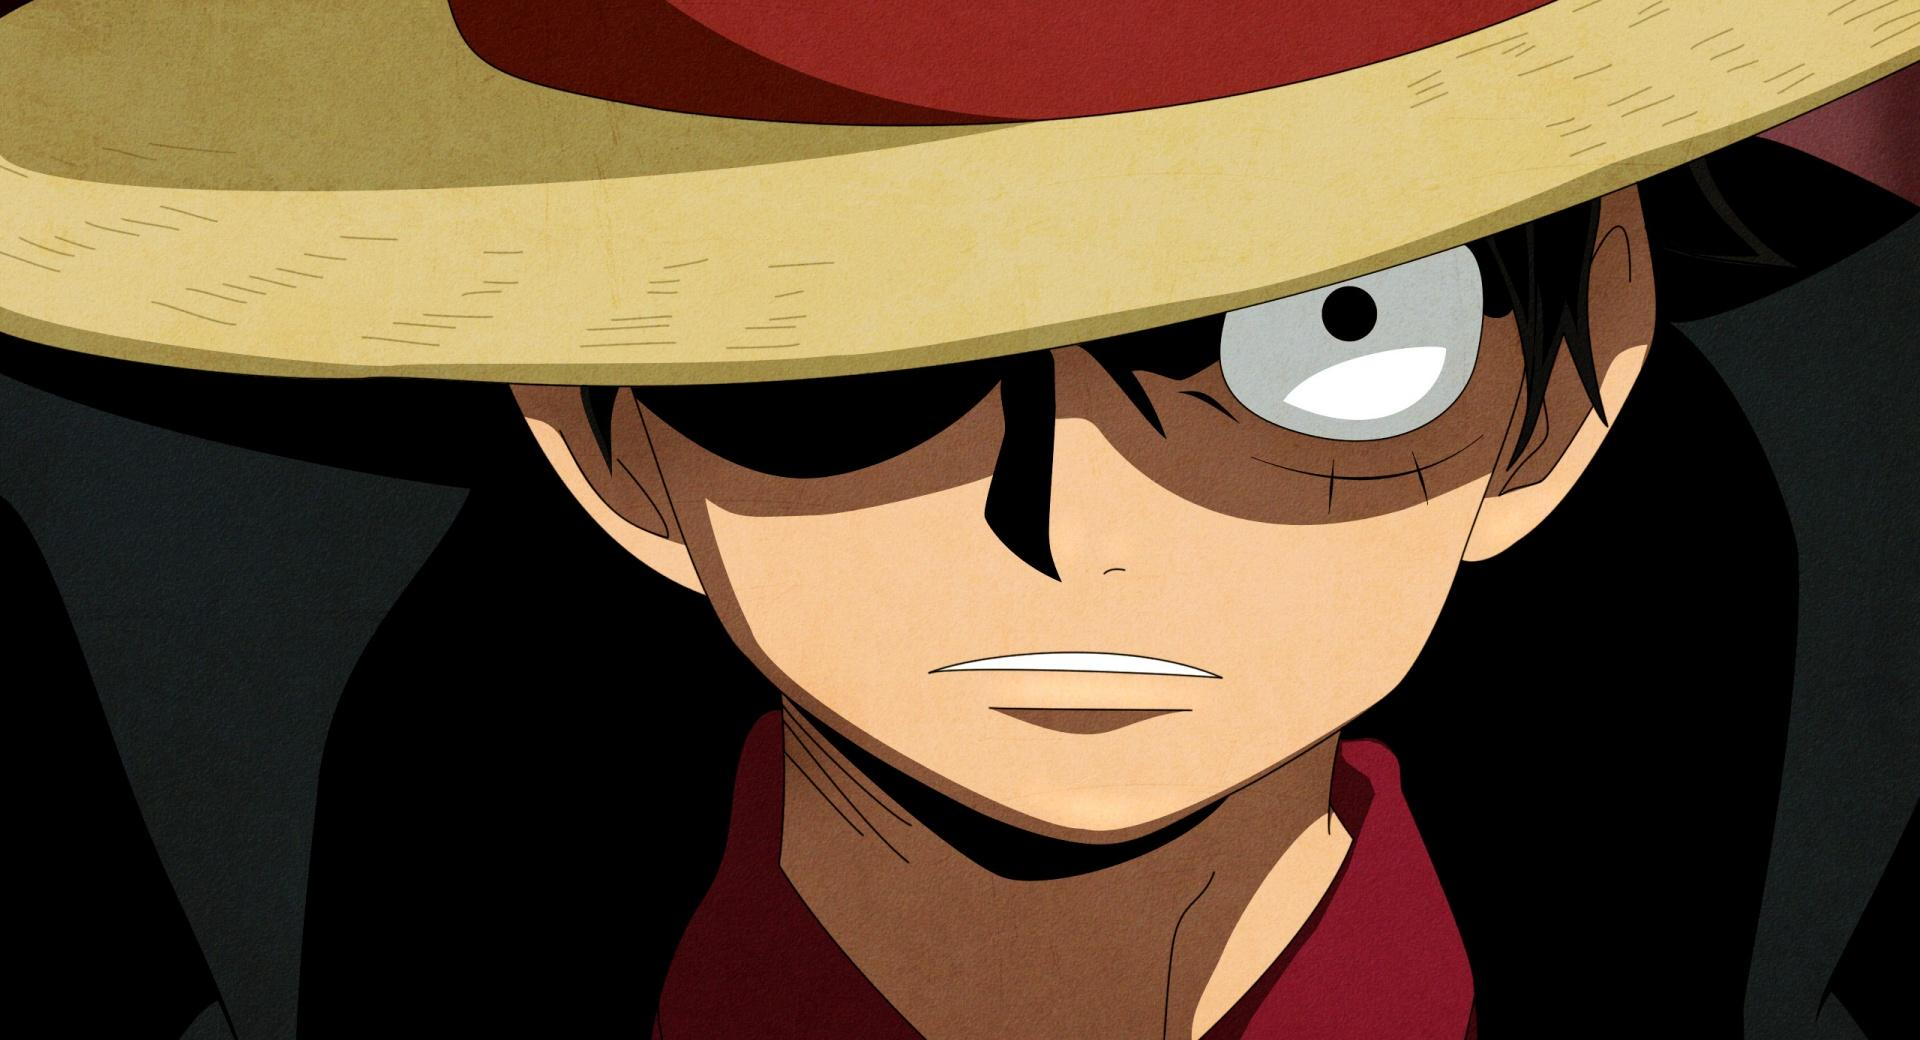 One Piece, Luffy at 640 x 960 iPhone 4 size wallpapers HD quality